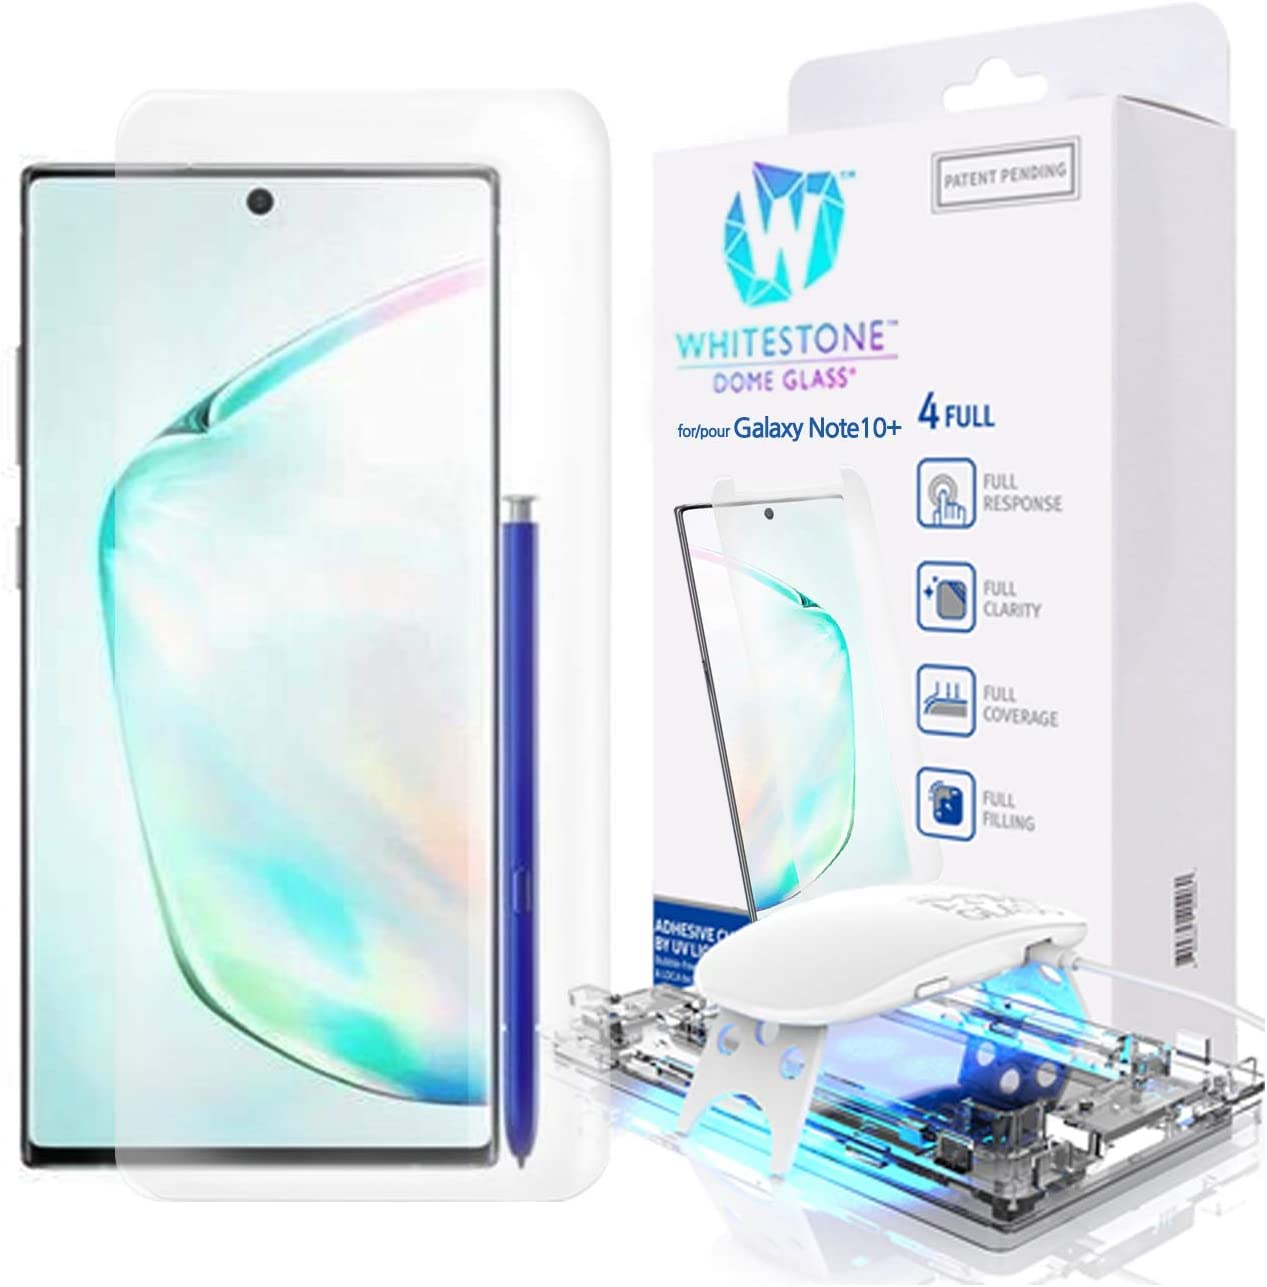 Galaxy Note 10 Plus Screen Protector, [Dome Glass] Full 3D Curved Edge Tempered Glass Shield [Liquid Dispersion Tech] Easy Install Kit for Samsung Galaxy Note 10+ and Note 10 + 5G - One Pack